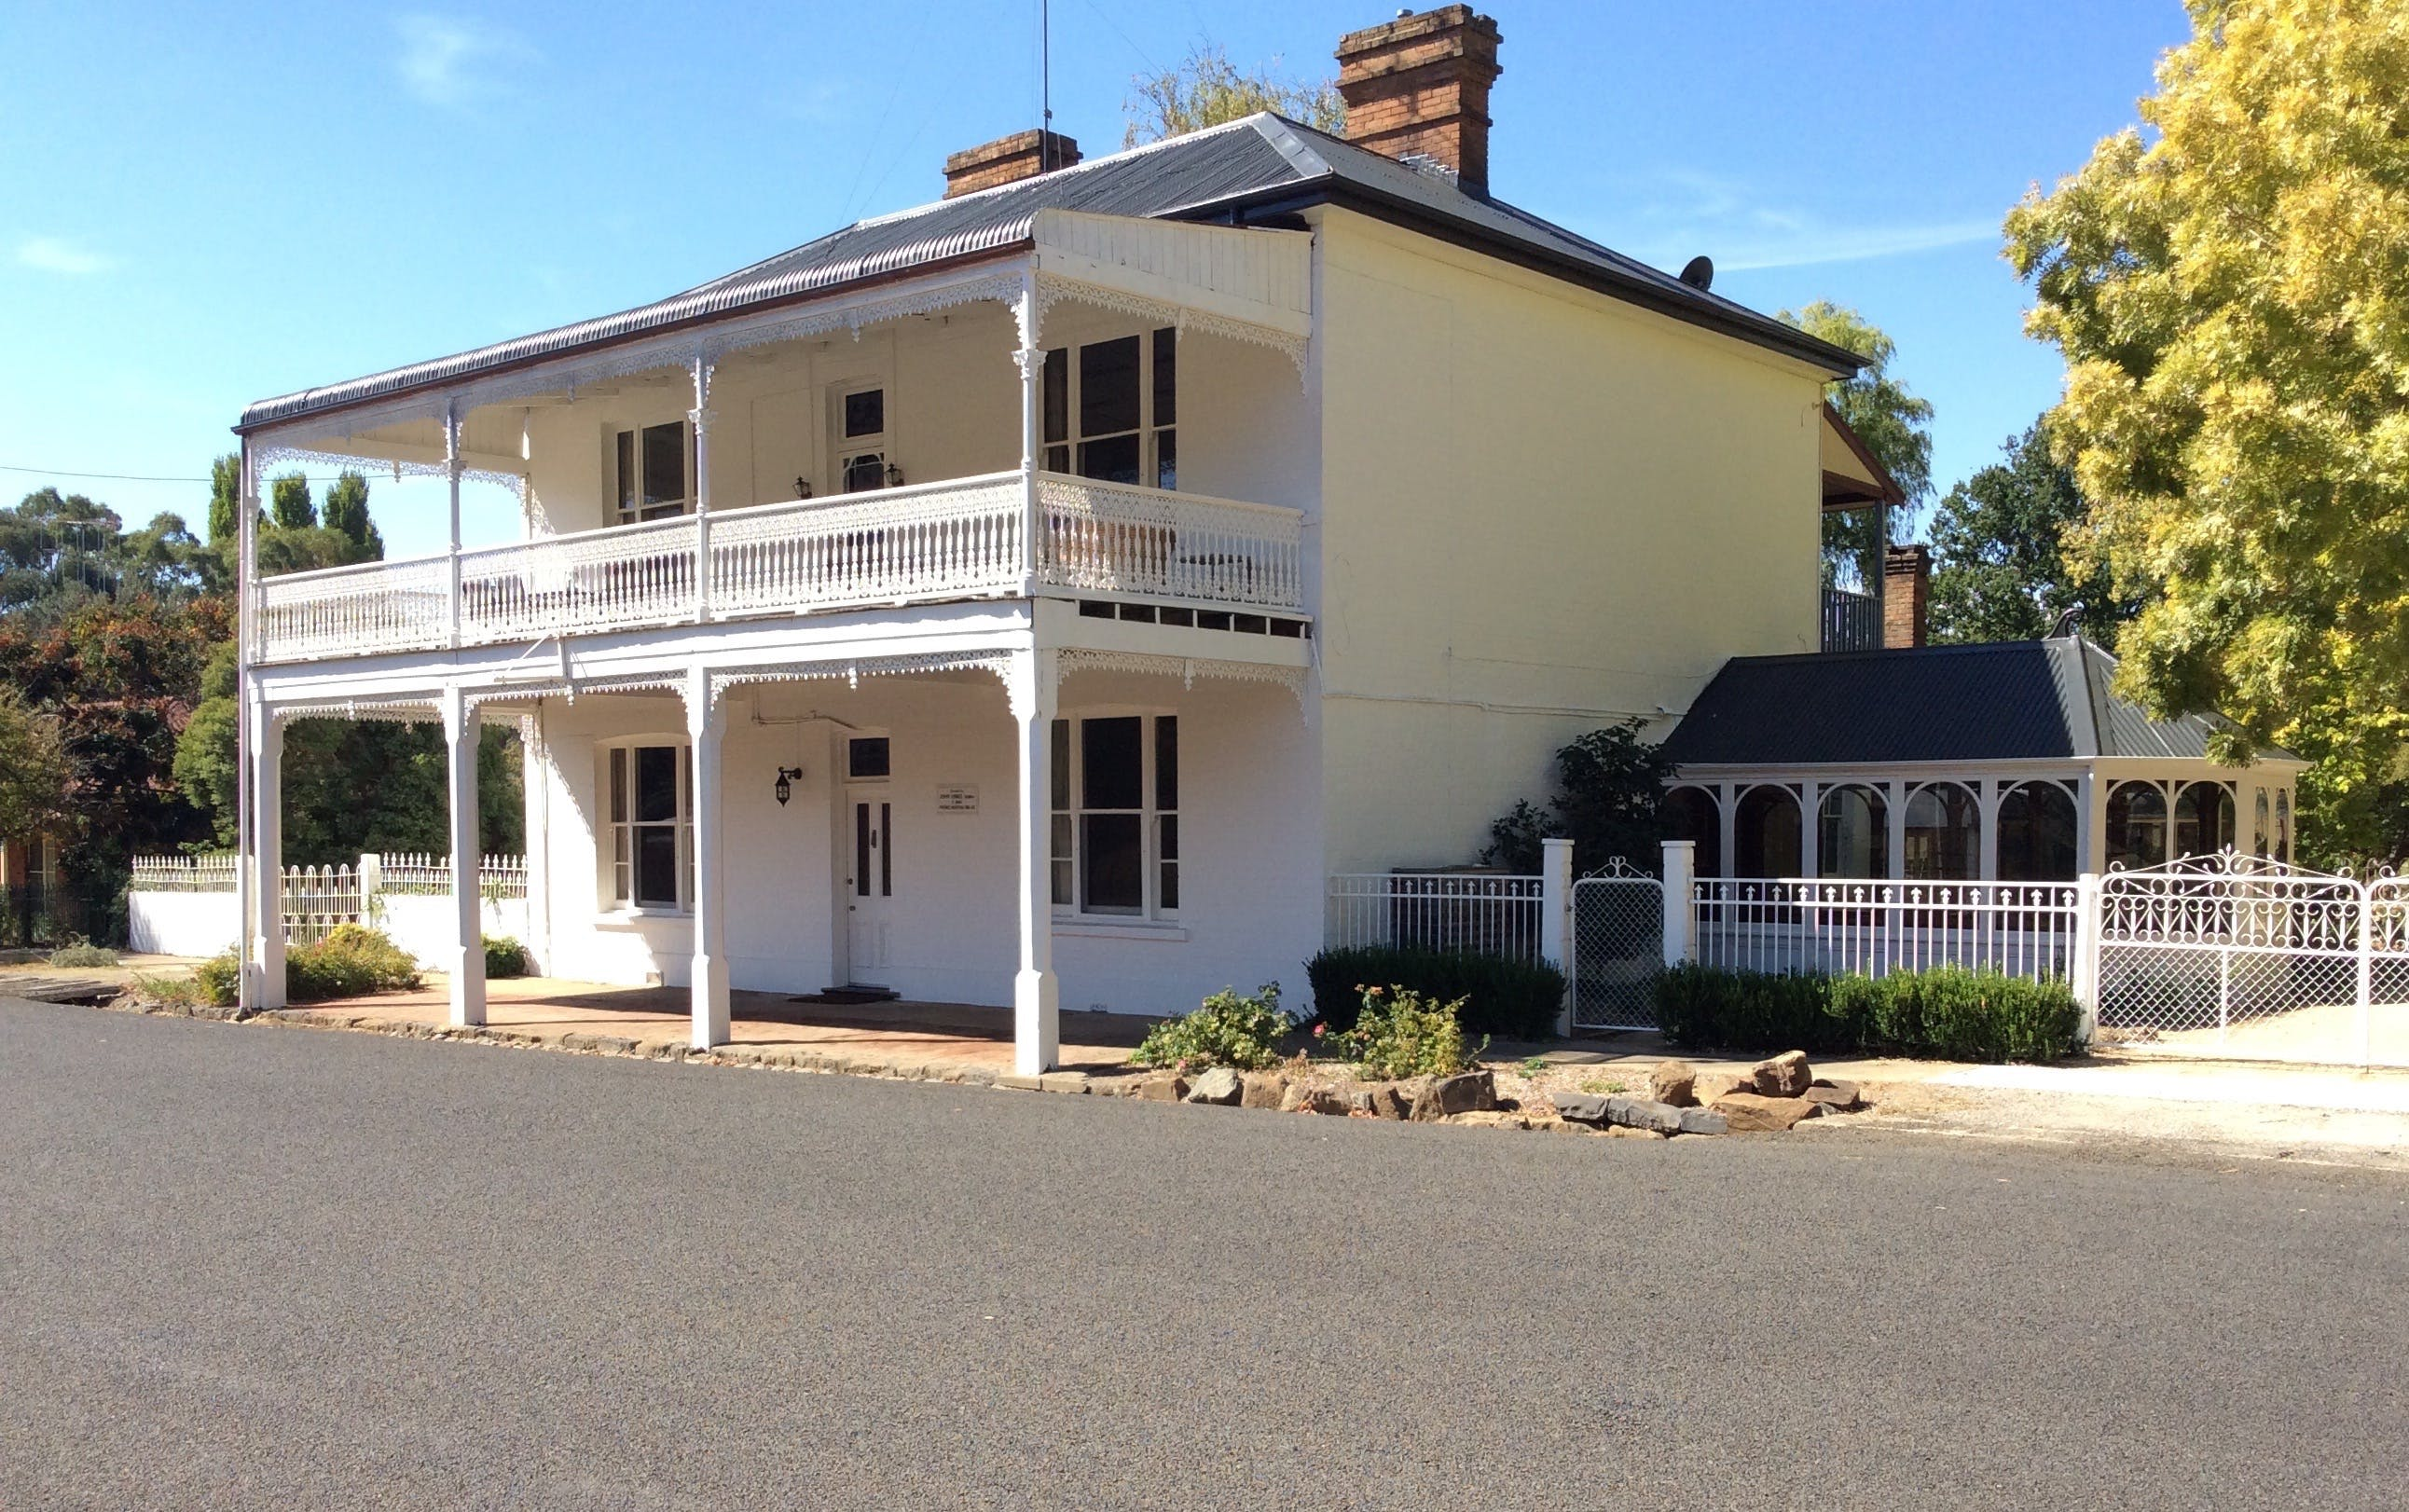 The White House Carcoar - Townsville Tourism